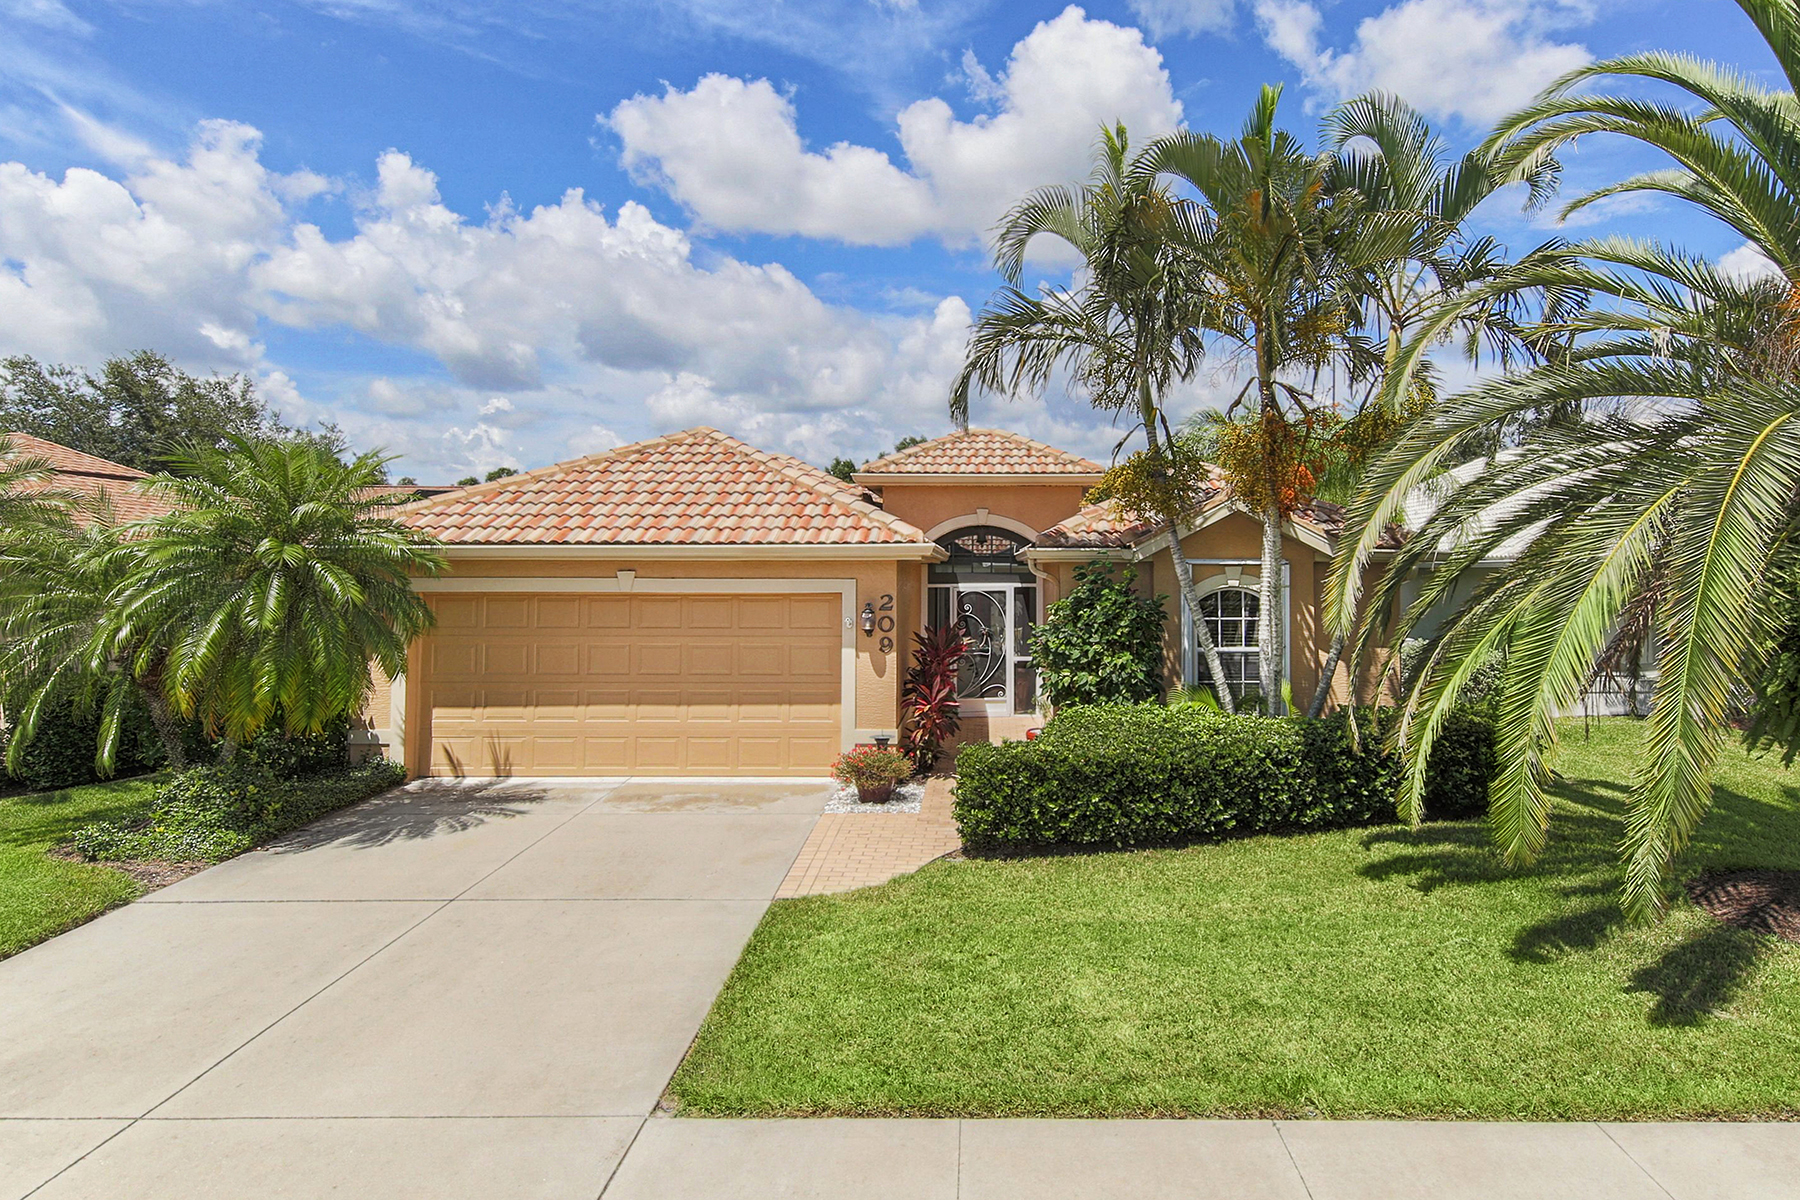 Single Family Home for Sale at 209 Venice Palms Blvd , Venice, FL 34292 209 Venice Palms Blvd Venice, Florida, 34292 United States